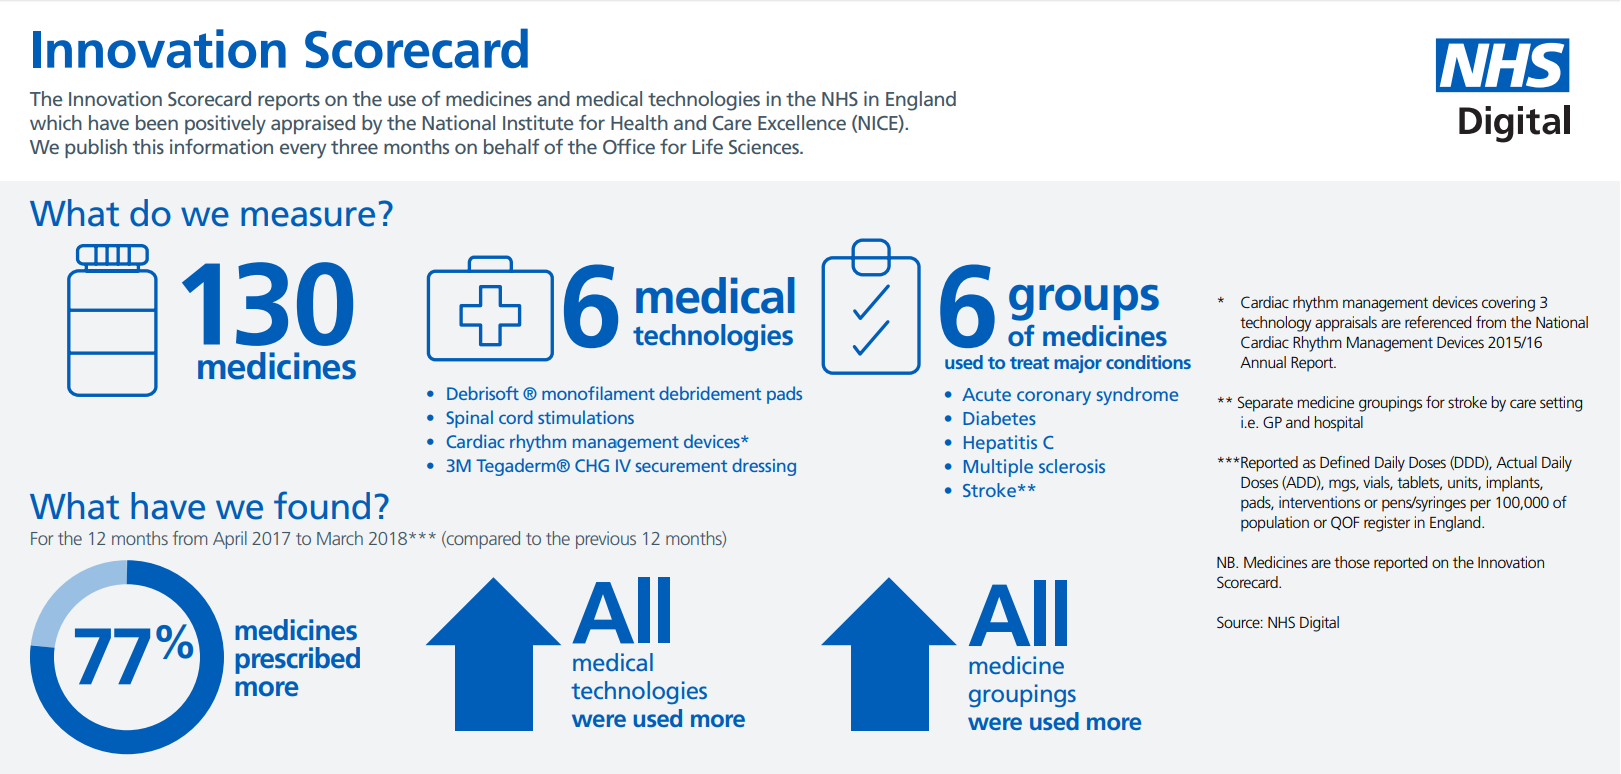 Visual of the Innovation Scorecard showing that 77% of medicines were prescribed more